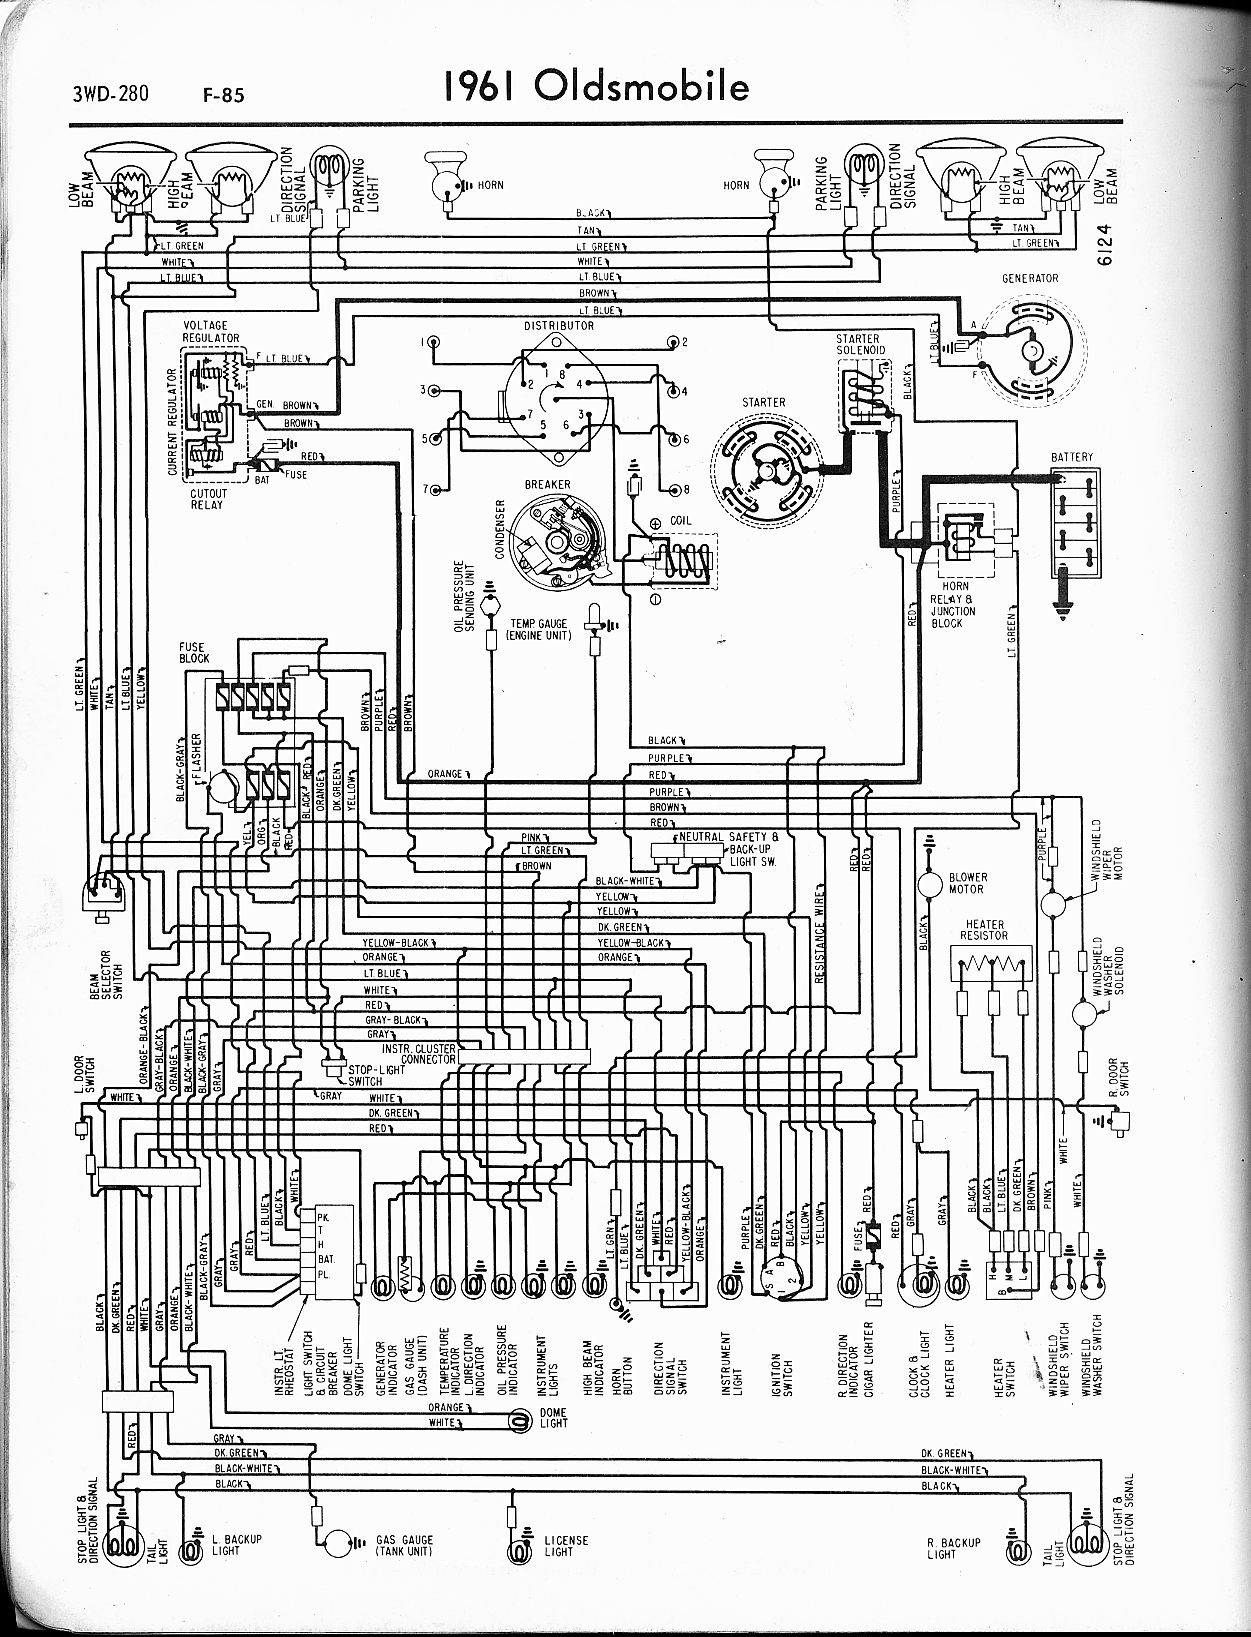 1969 oldsmobile wiring diagram wiring diagram online 1950 Cadillac Wiring Diagram 1969 oldsmobile wiring diagram